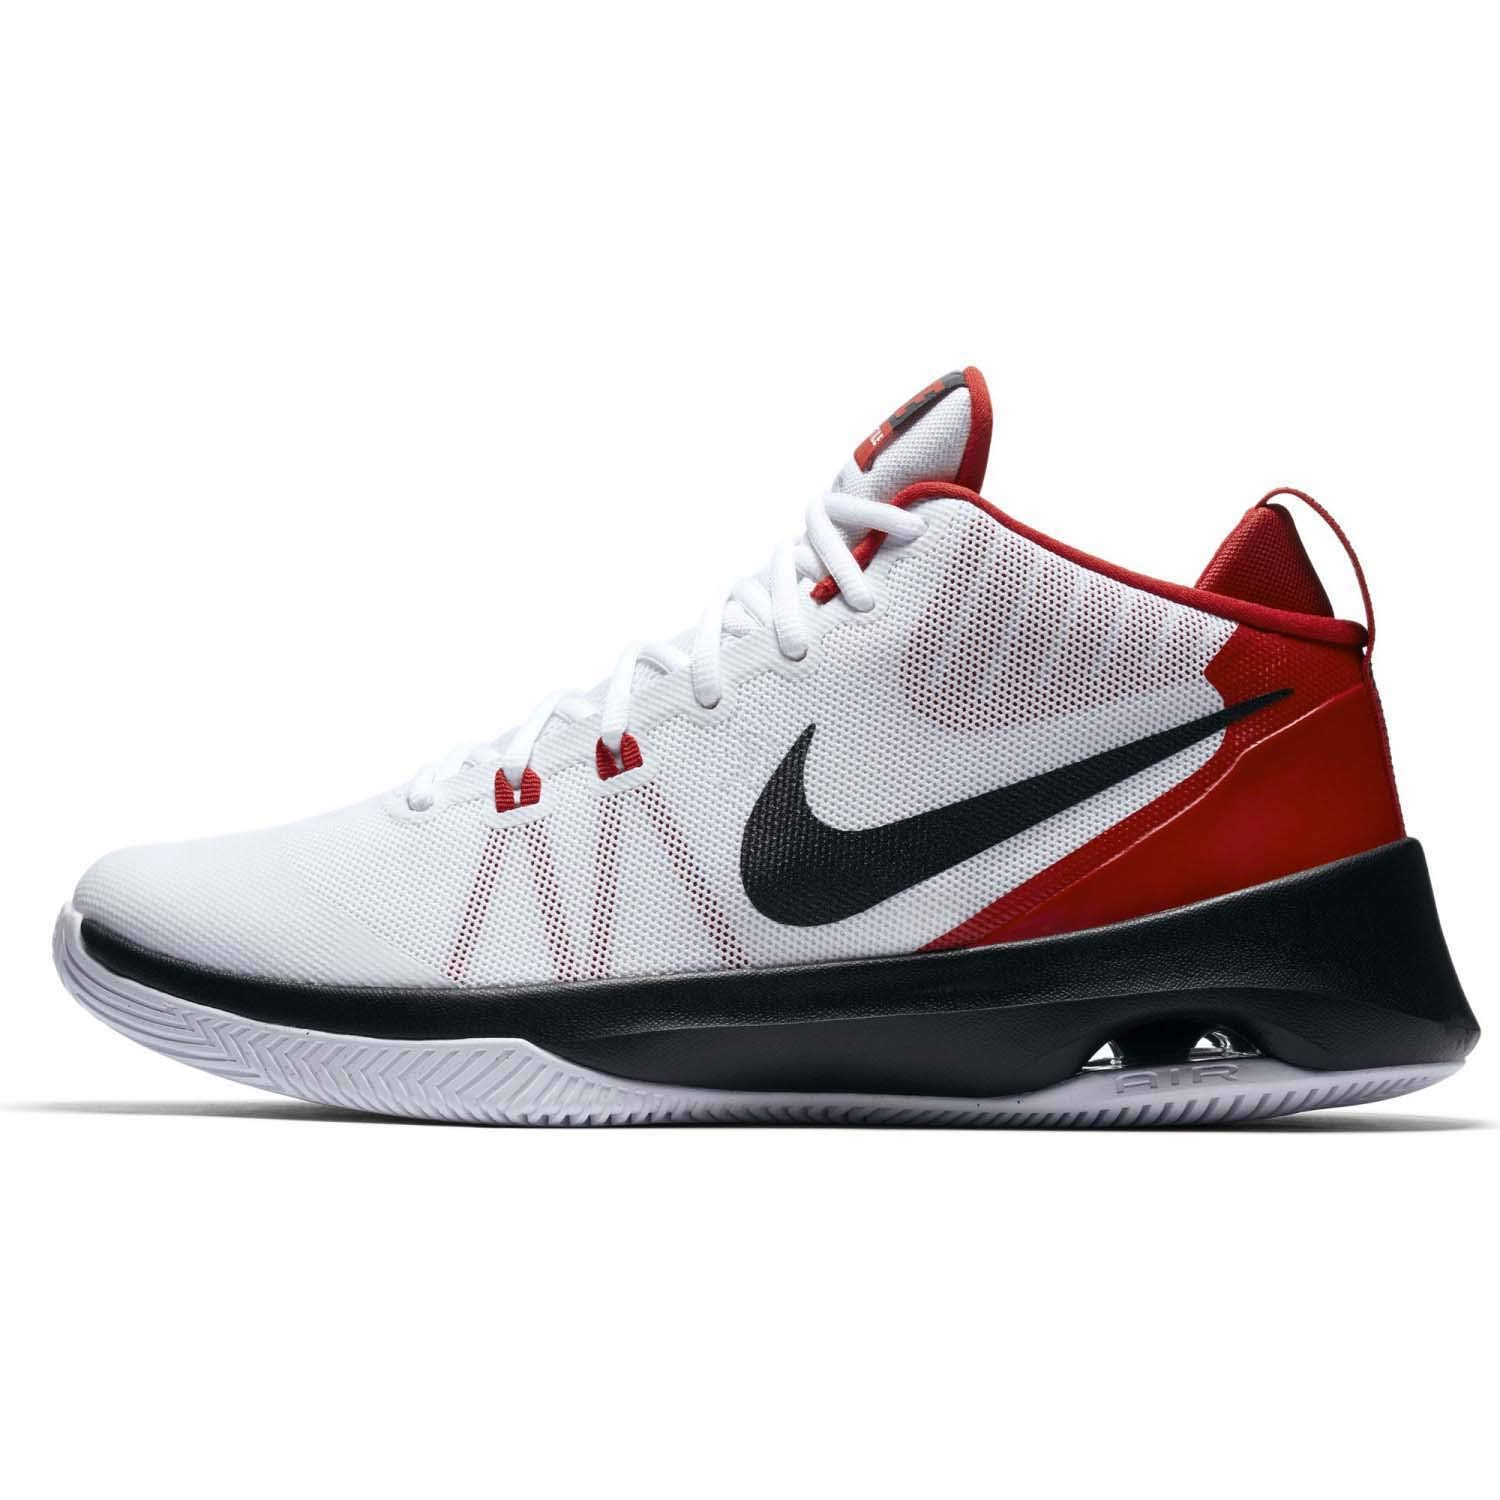 factory price 91038 0eb1d Nike Air Versatile White Black University Red Men s Basketball Shoes  Buy  Online at Low Prices in India - Amazon.in